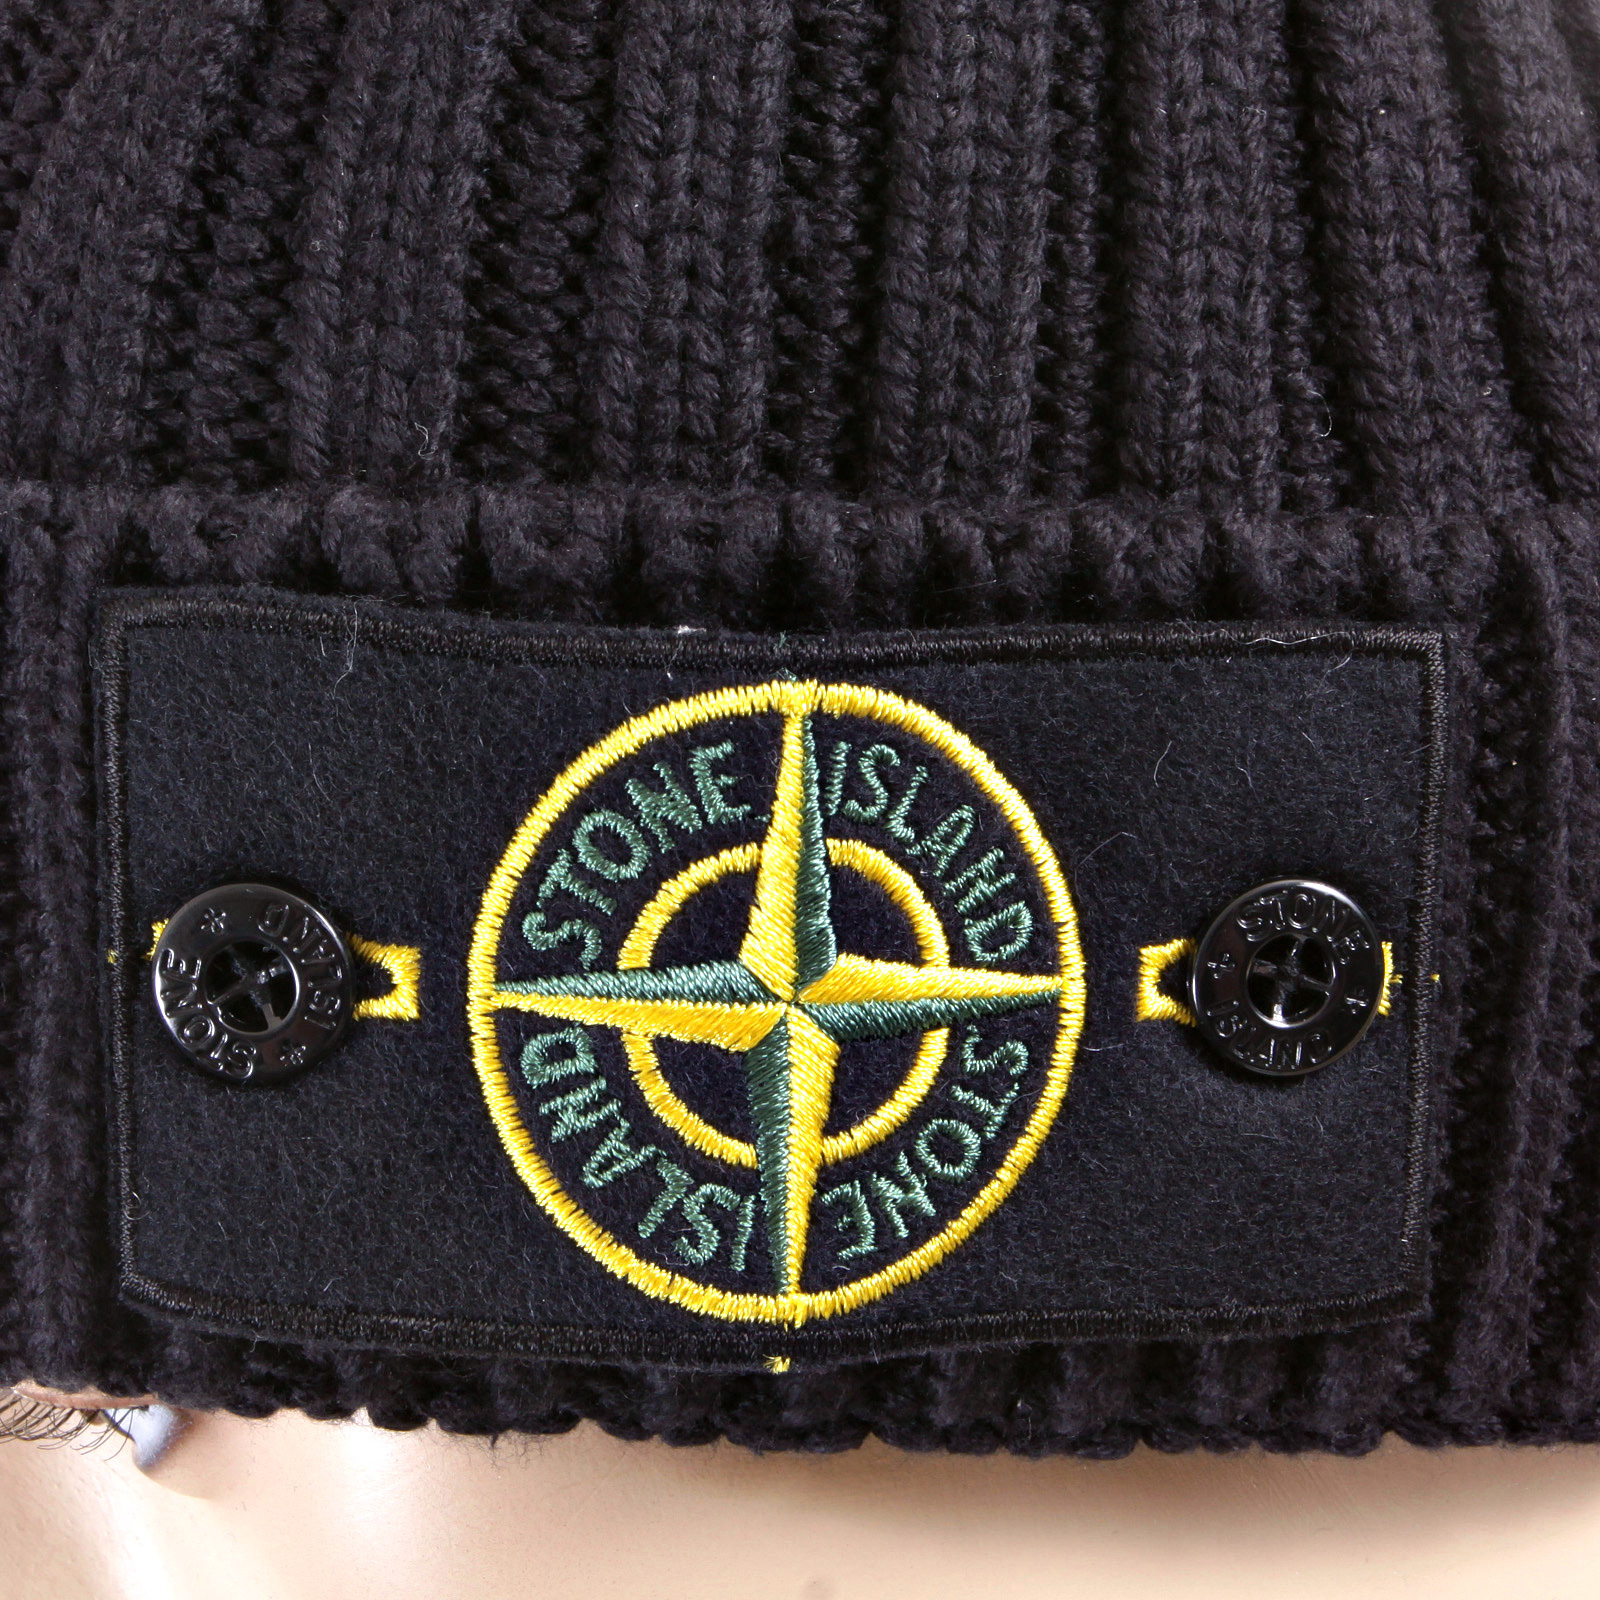 Fake Stone Island Buttons